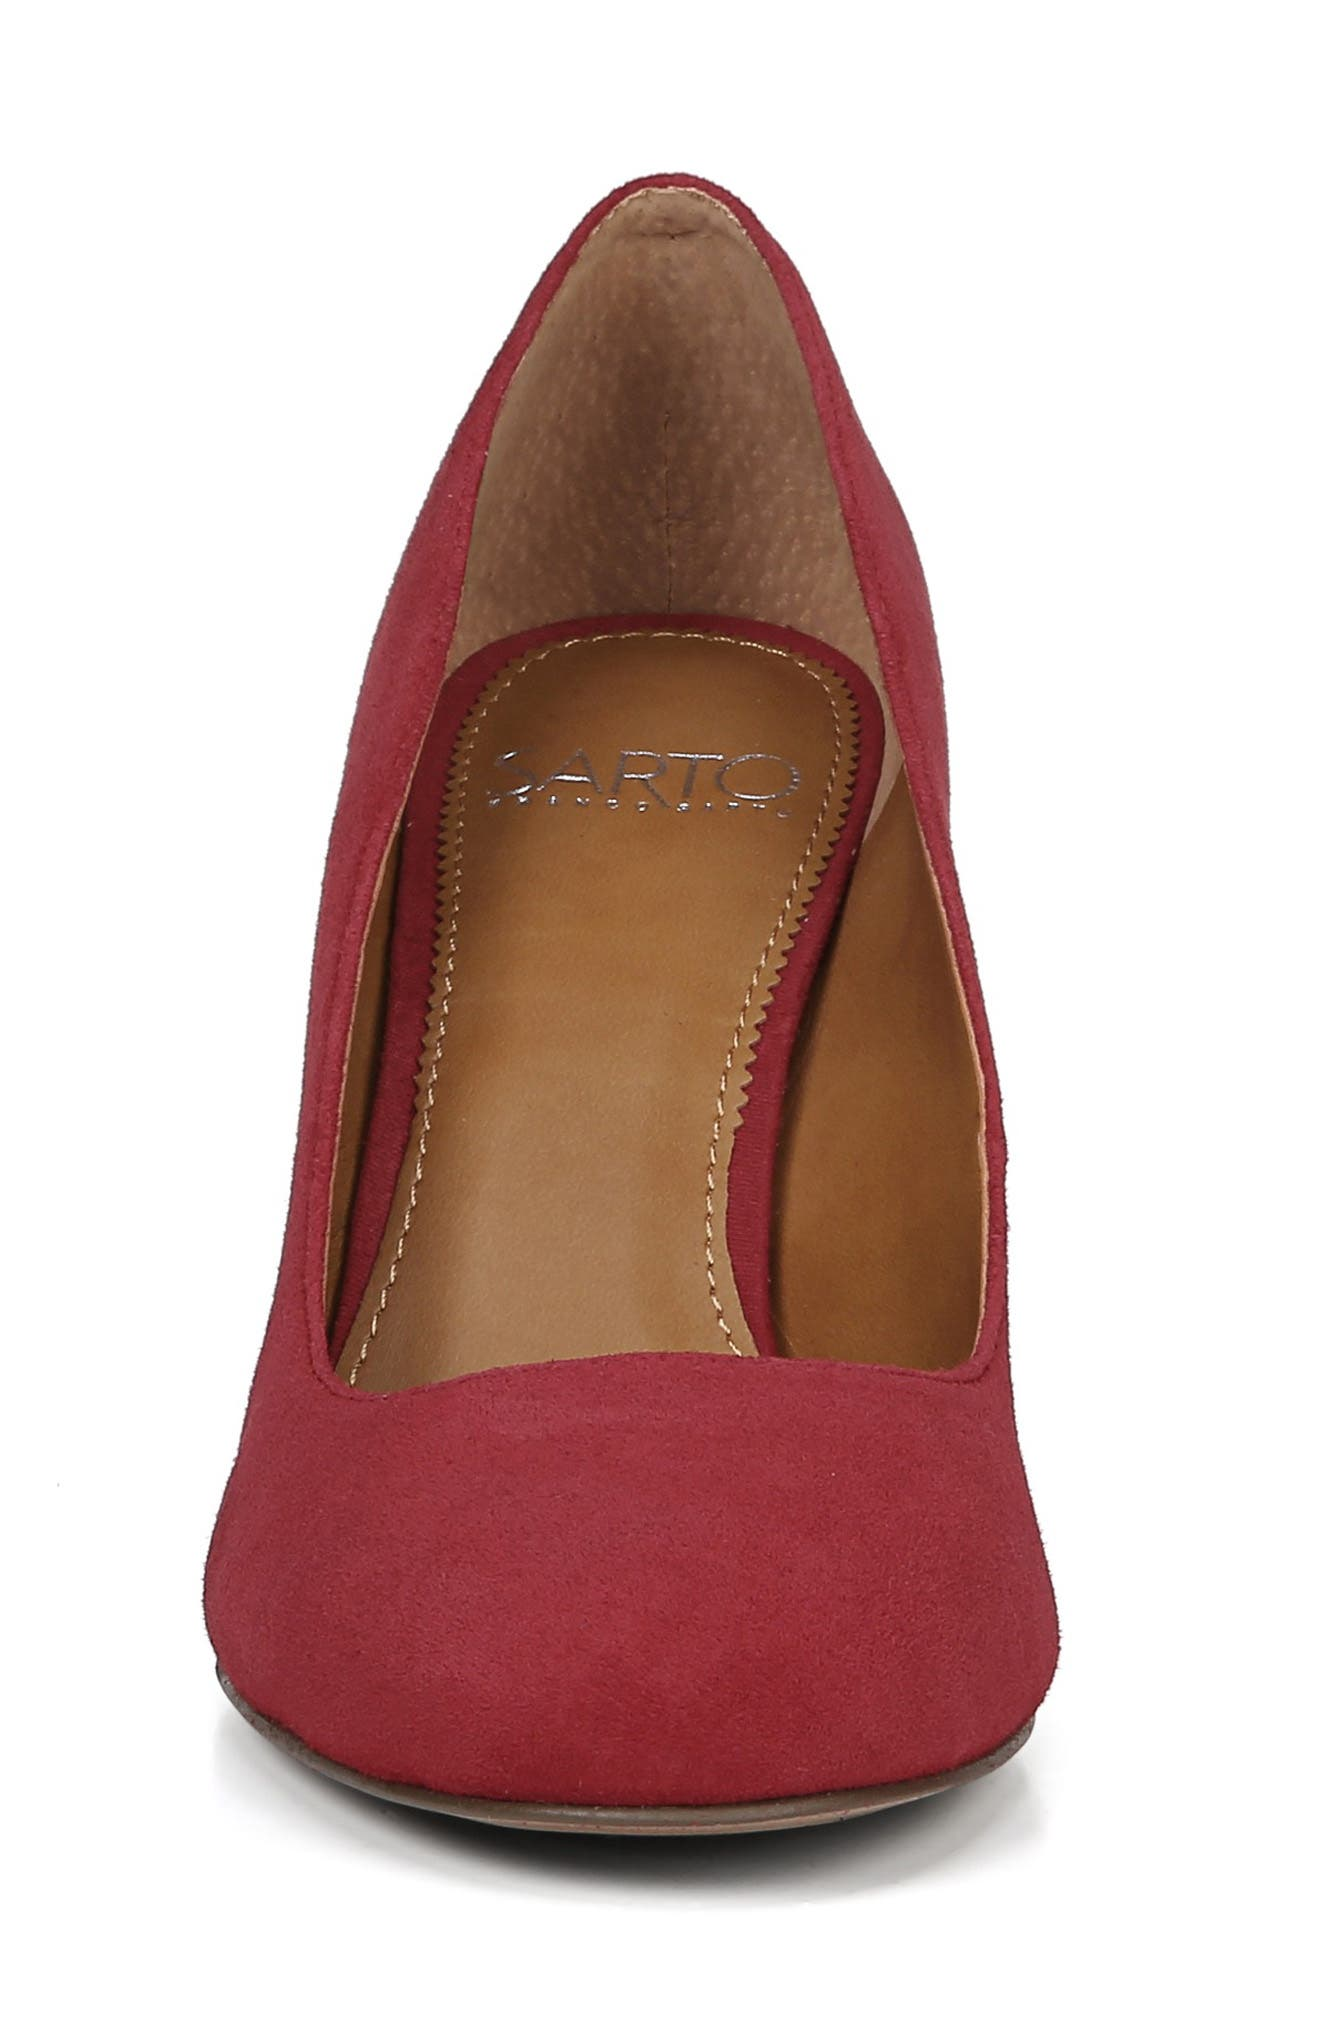 SARTO BY FRANCO SARTO,                             Aziza Block Heel Pump,                             Alternate thumbnail 4, color,                             CHERRY RED SUEDE